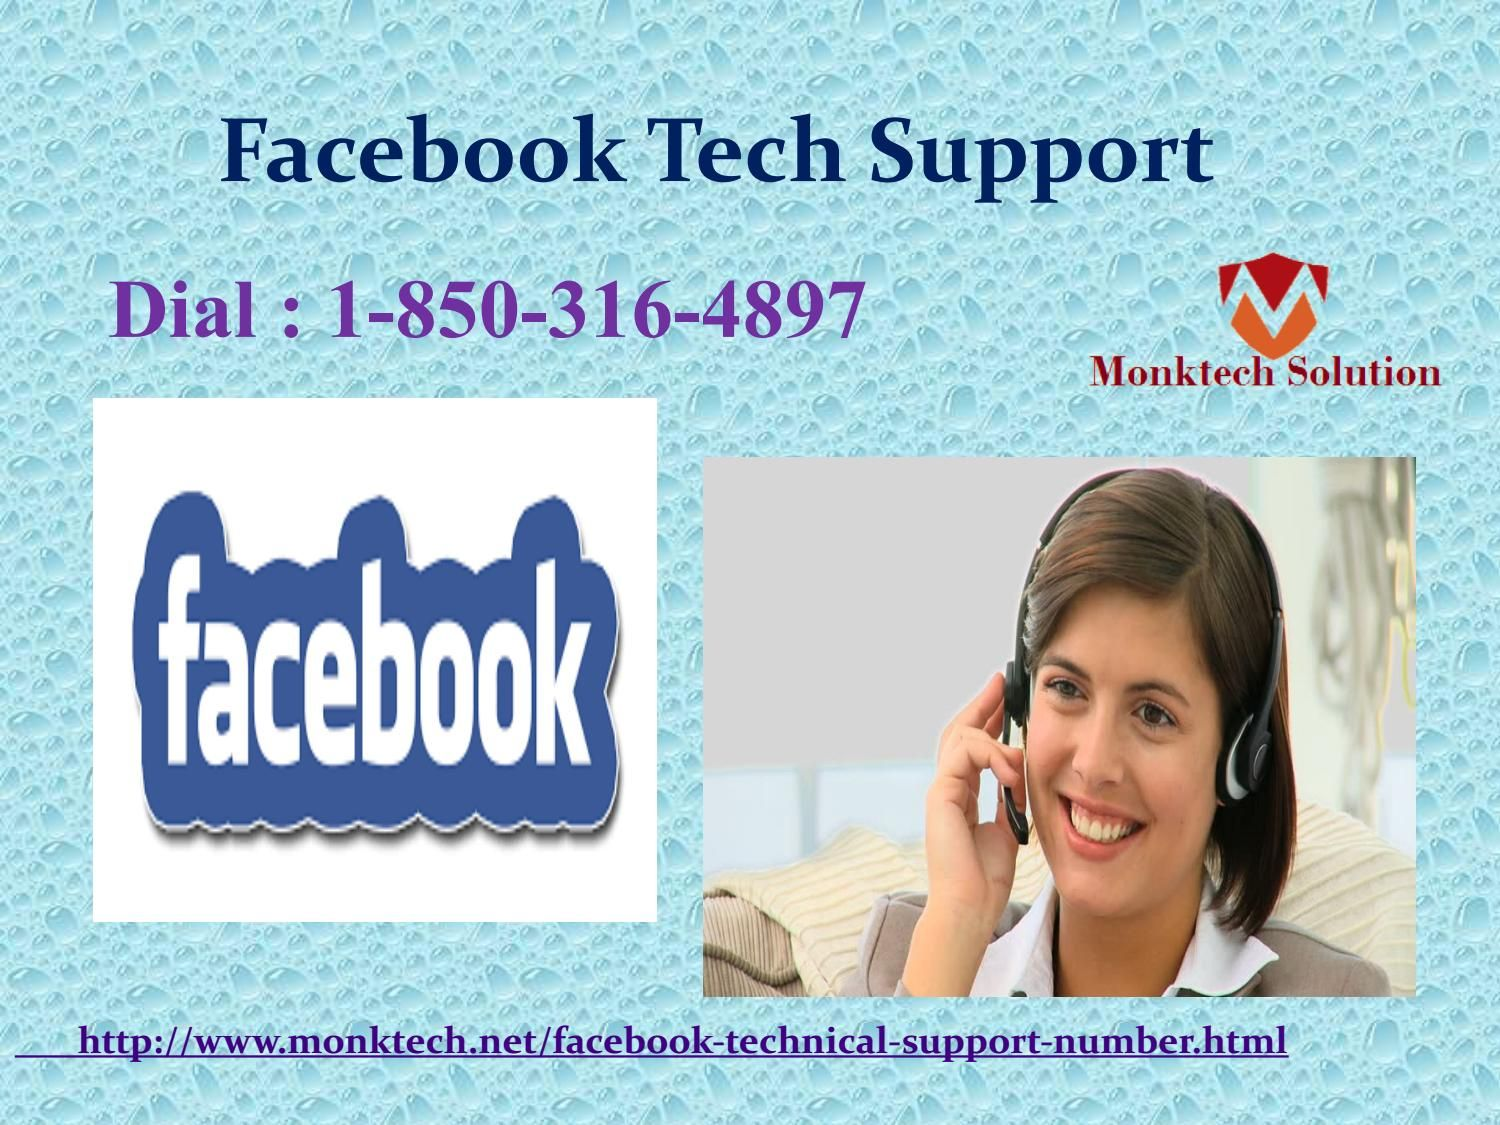 Take Help From Facebook Tech Support 18503164897 Team